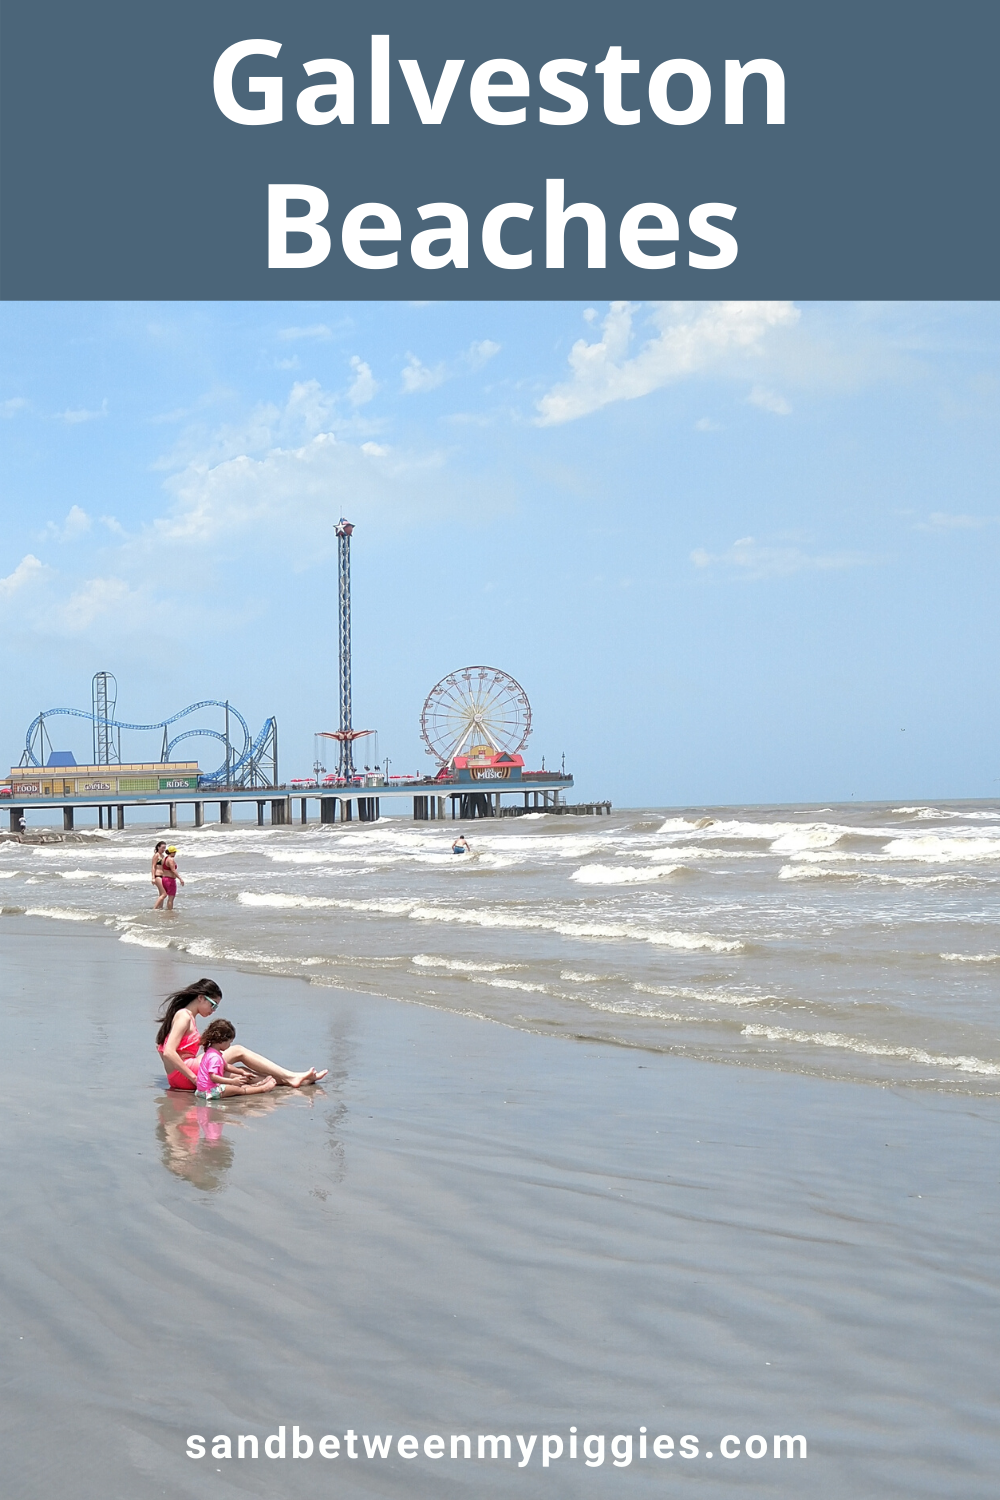 Are you planning your next vacation? Why not head down to the Galveston beaches? Located an hour outside of Houston, go explore the coast of Texas! #galvestonbeaches #bestgalvestonbeaches #galvestonbeachesideas #galvestonbeachesthingstodo #galvestonbeachesvacation